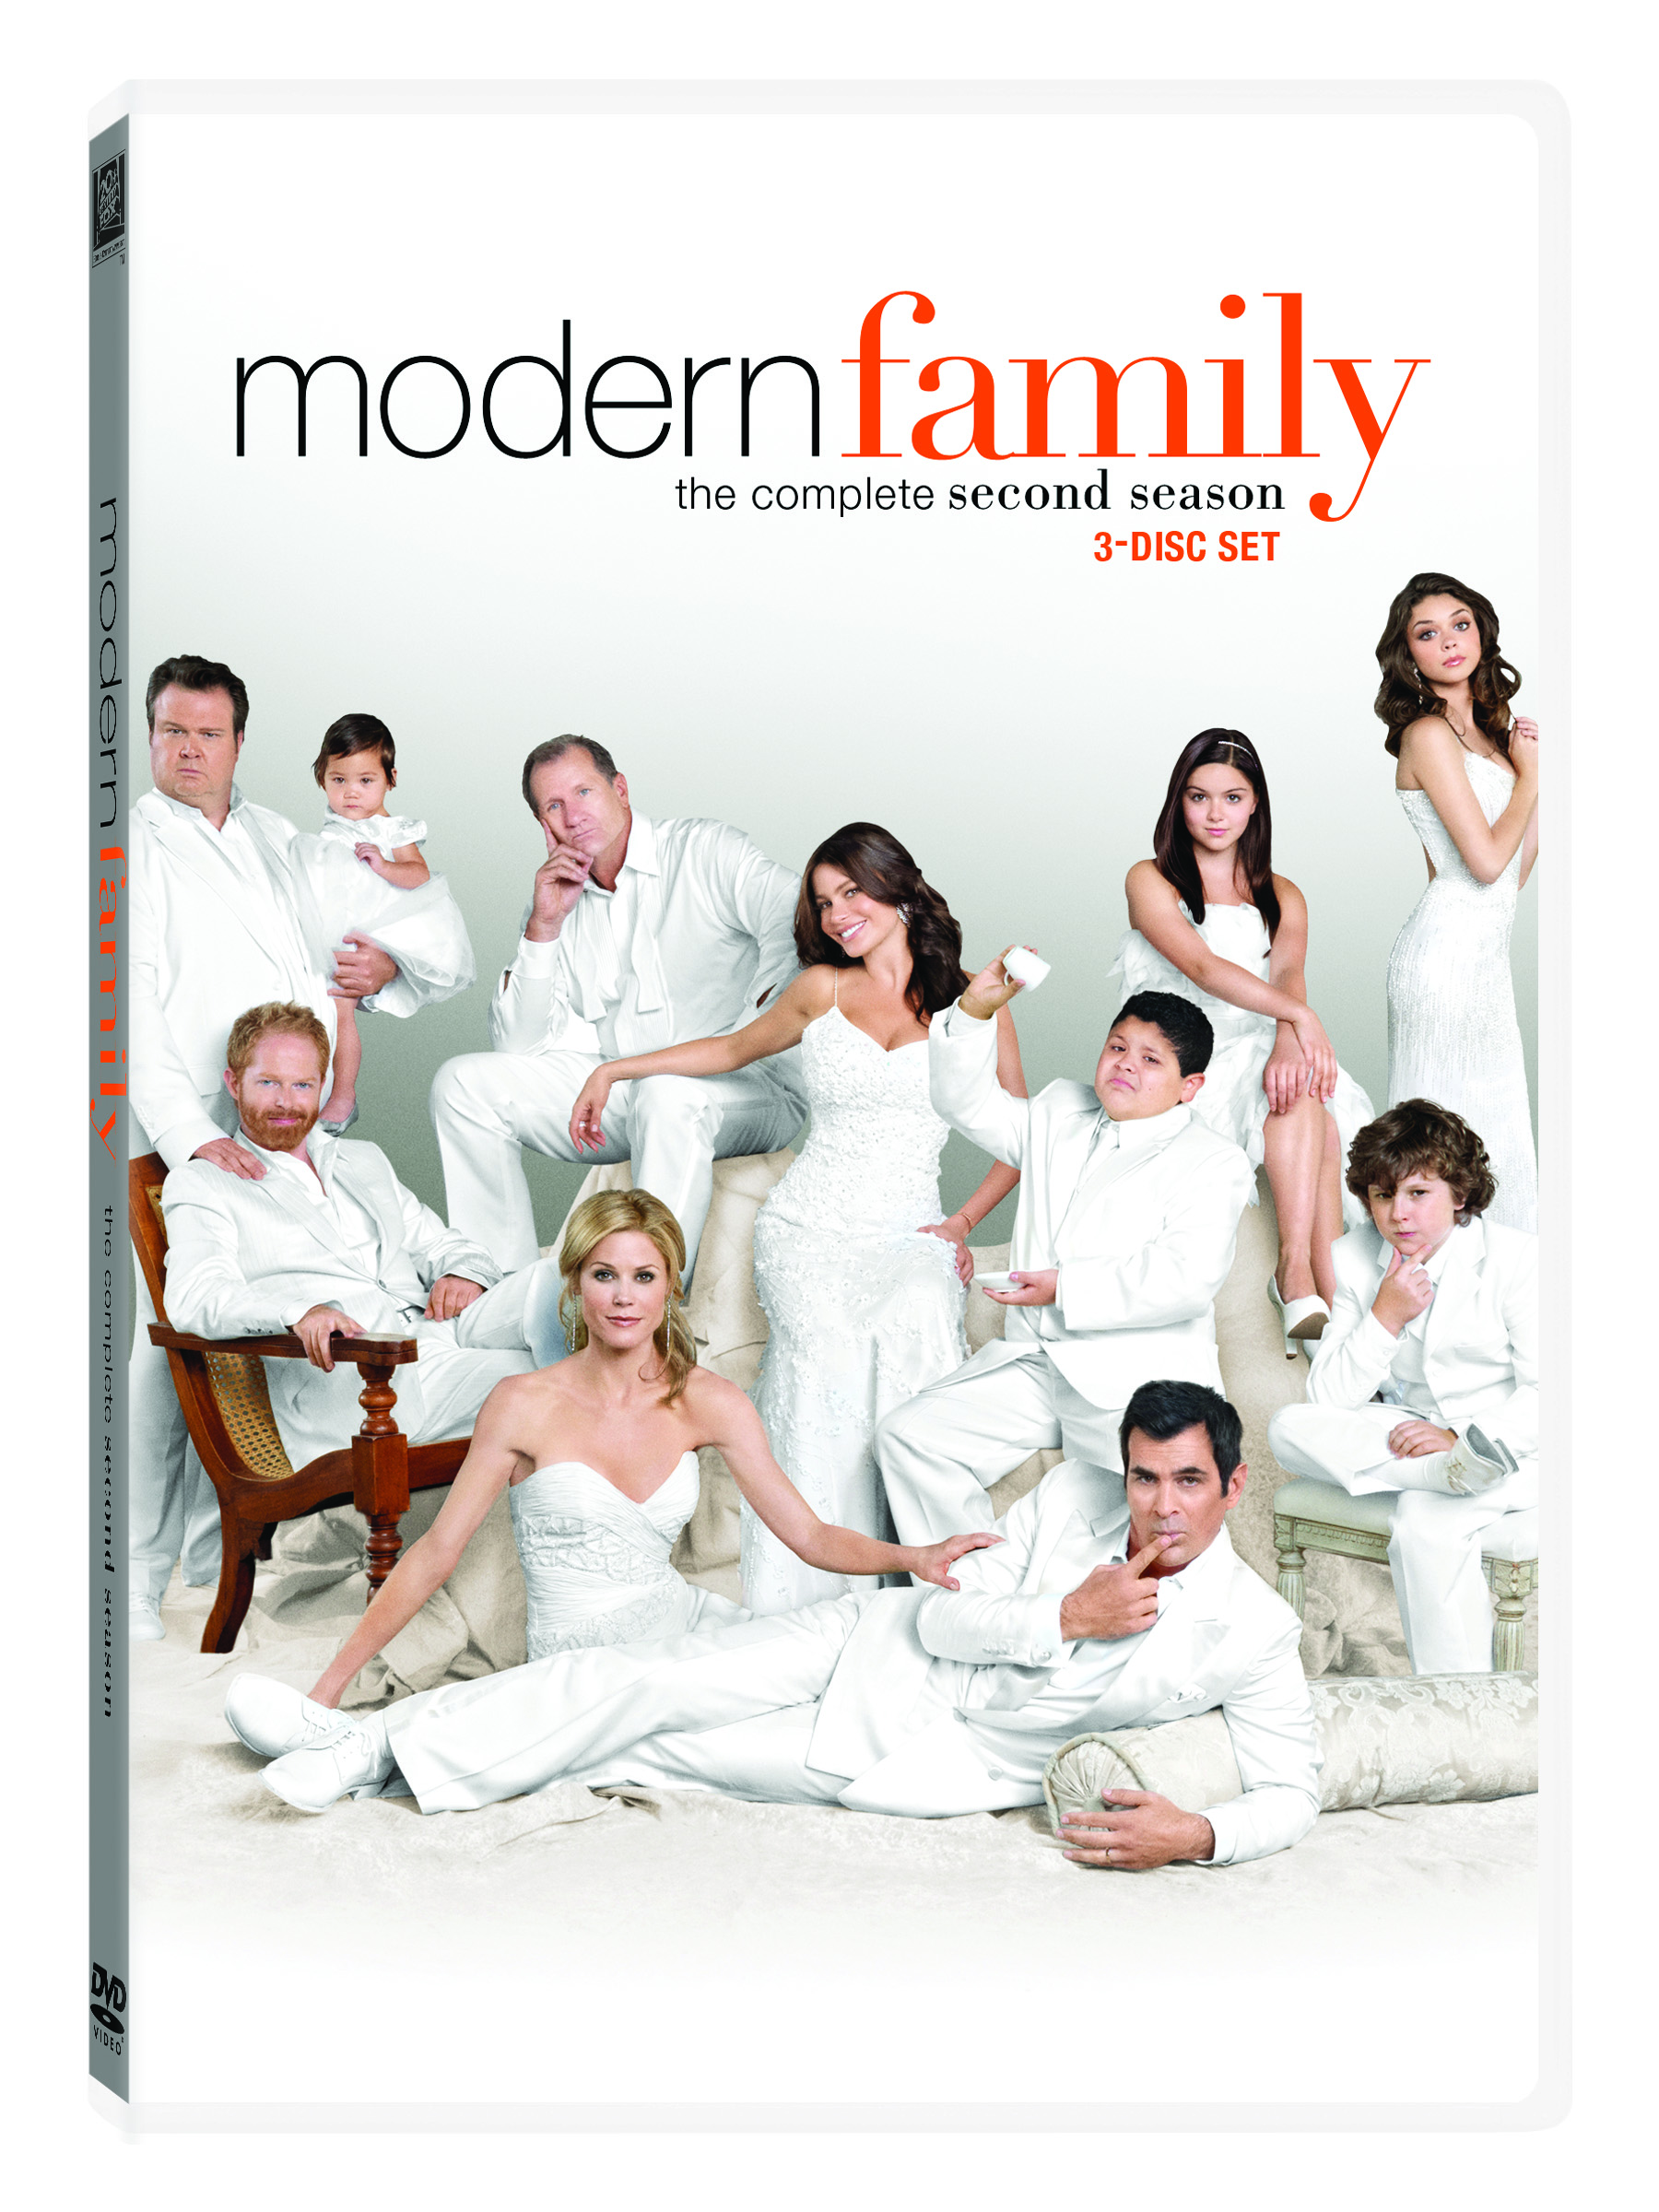 win a copy of quot modern family the complete second season quot on dvd